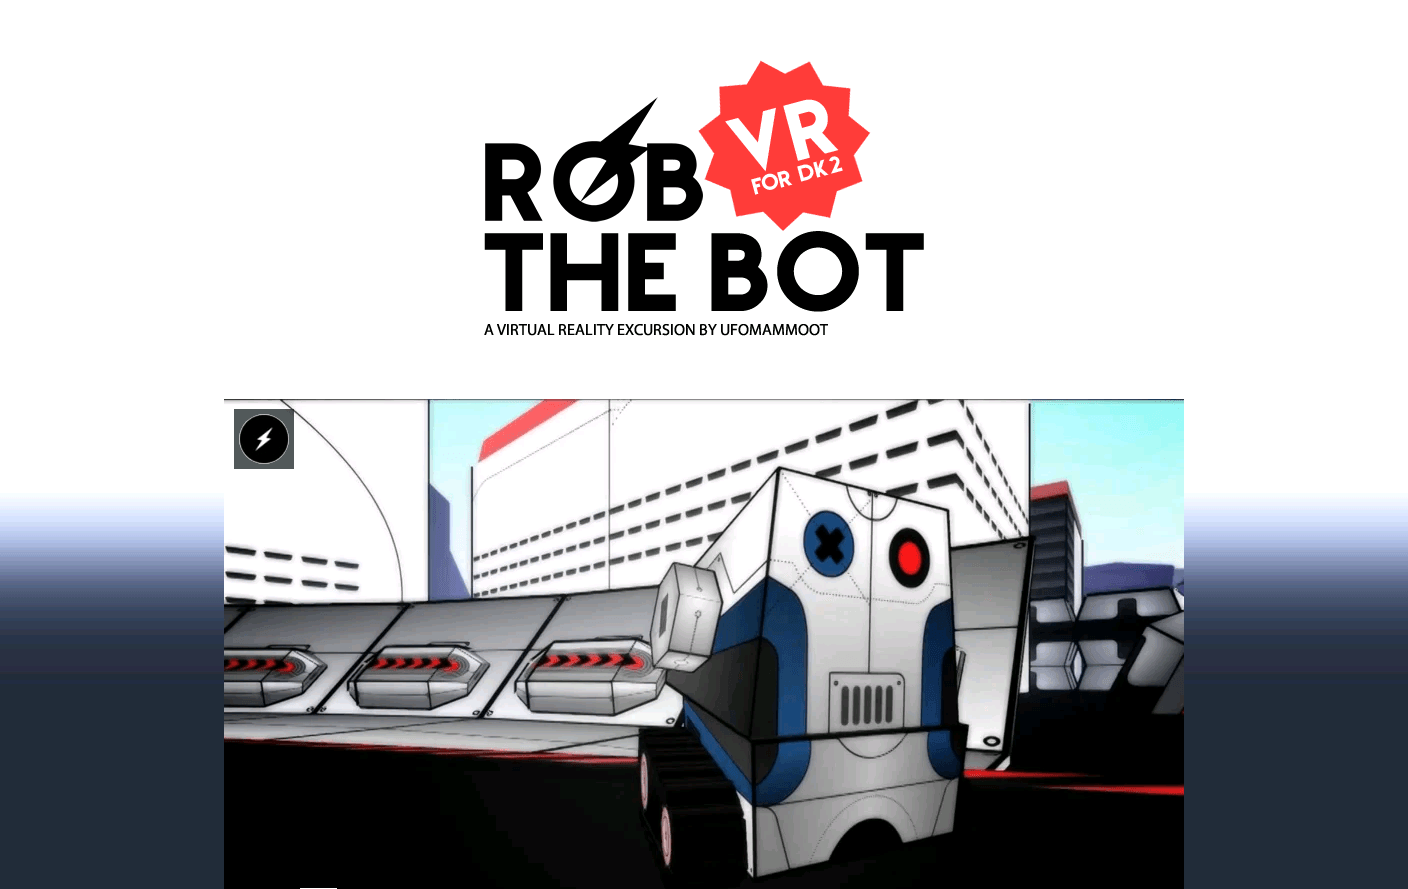 Rob the Bot